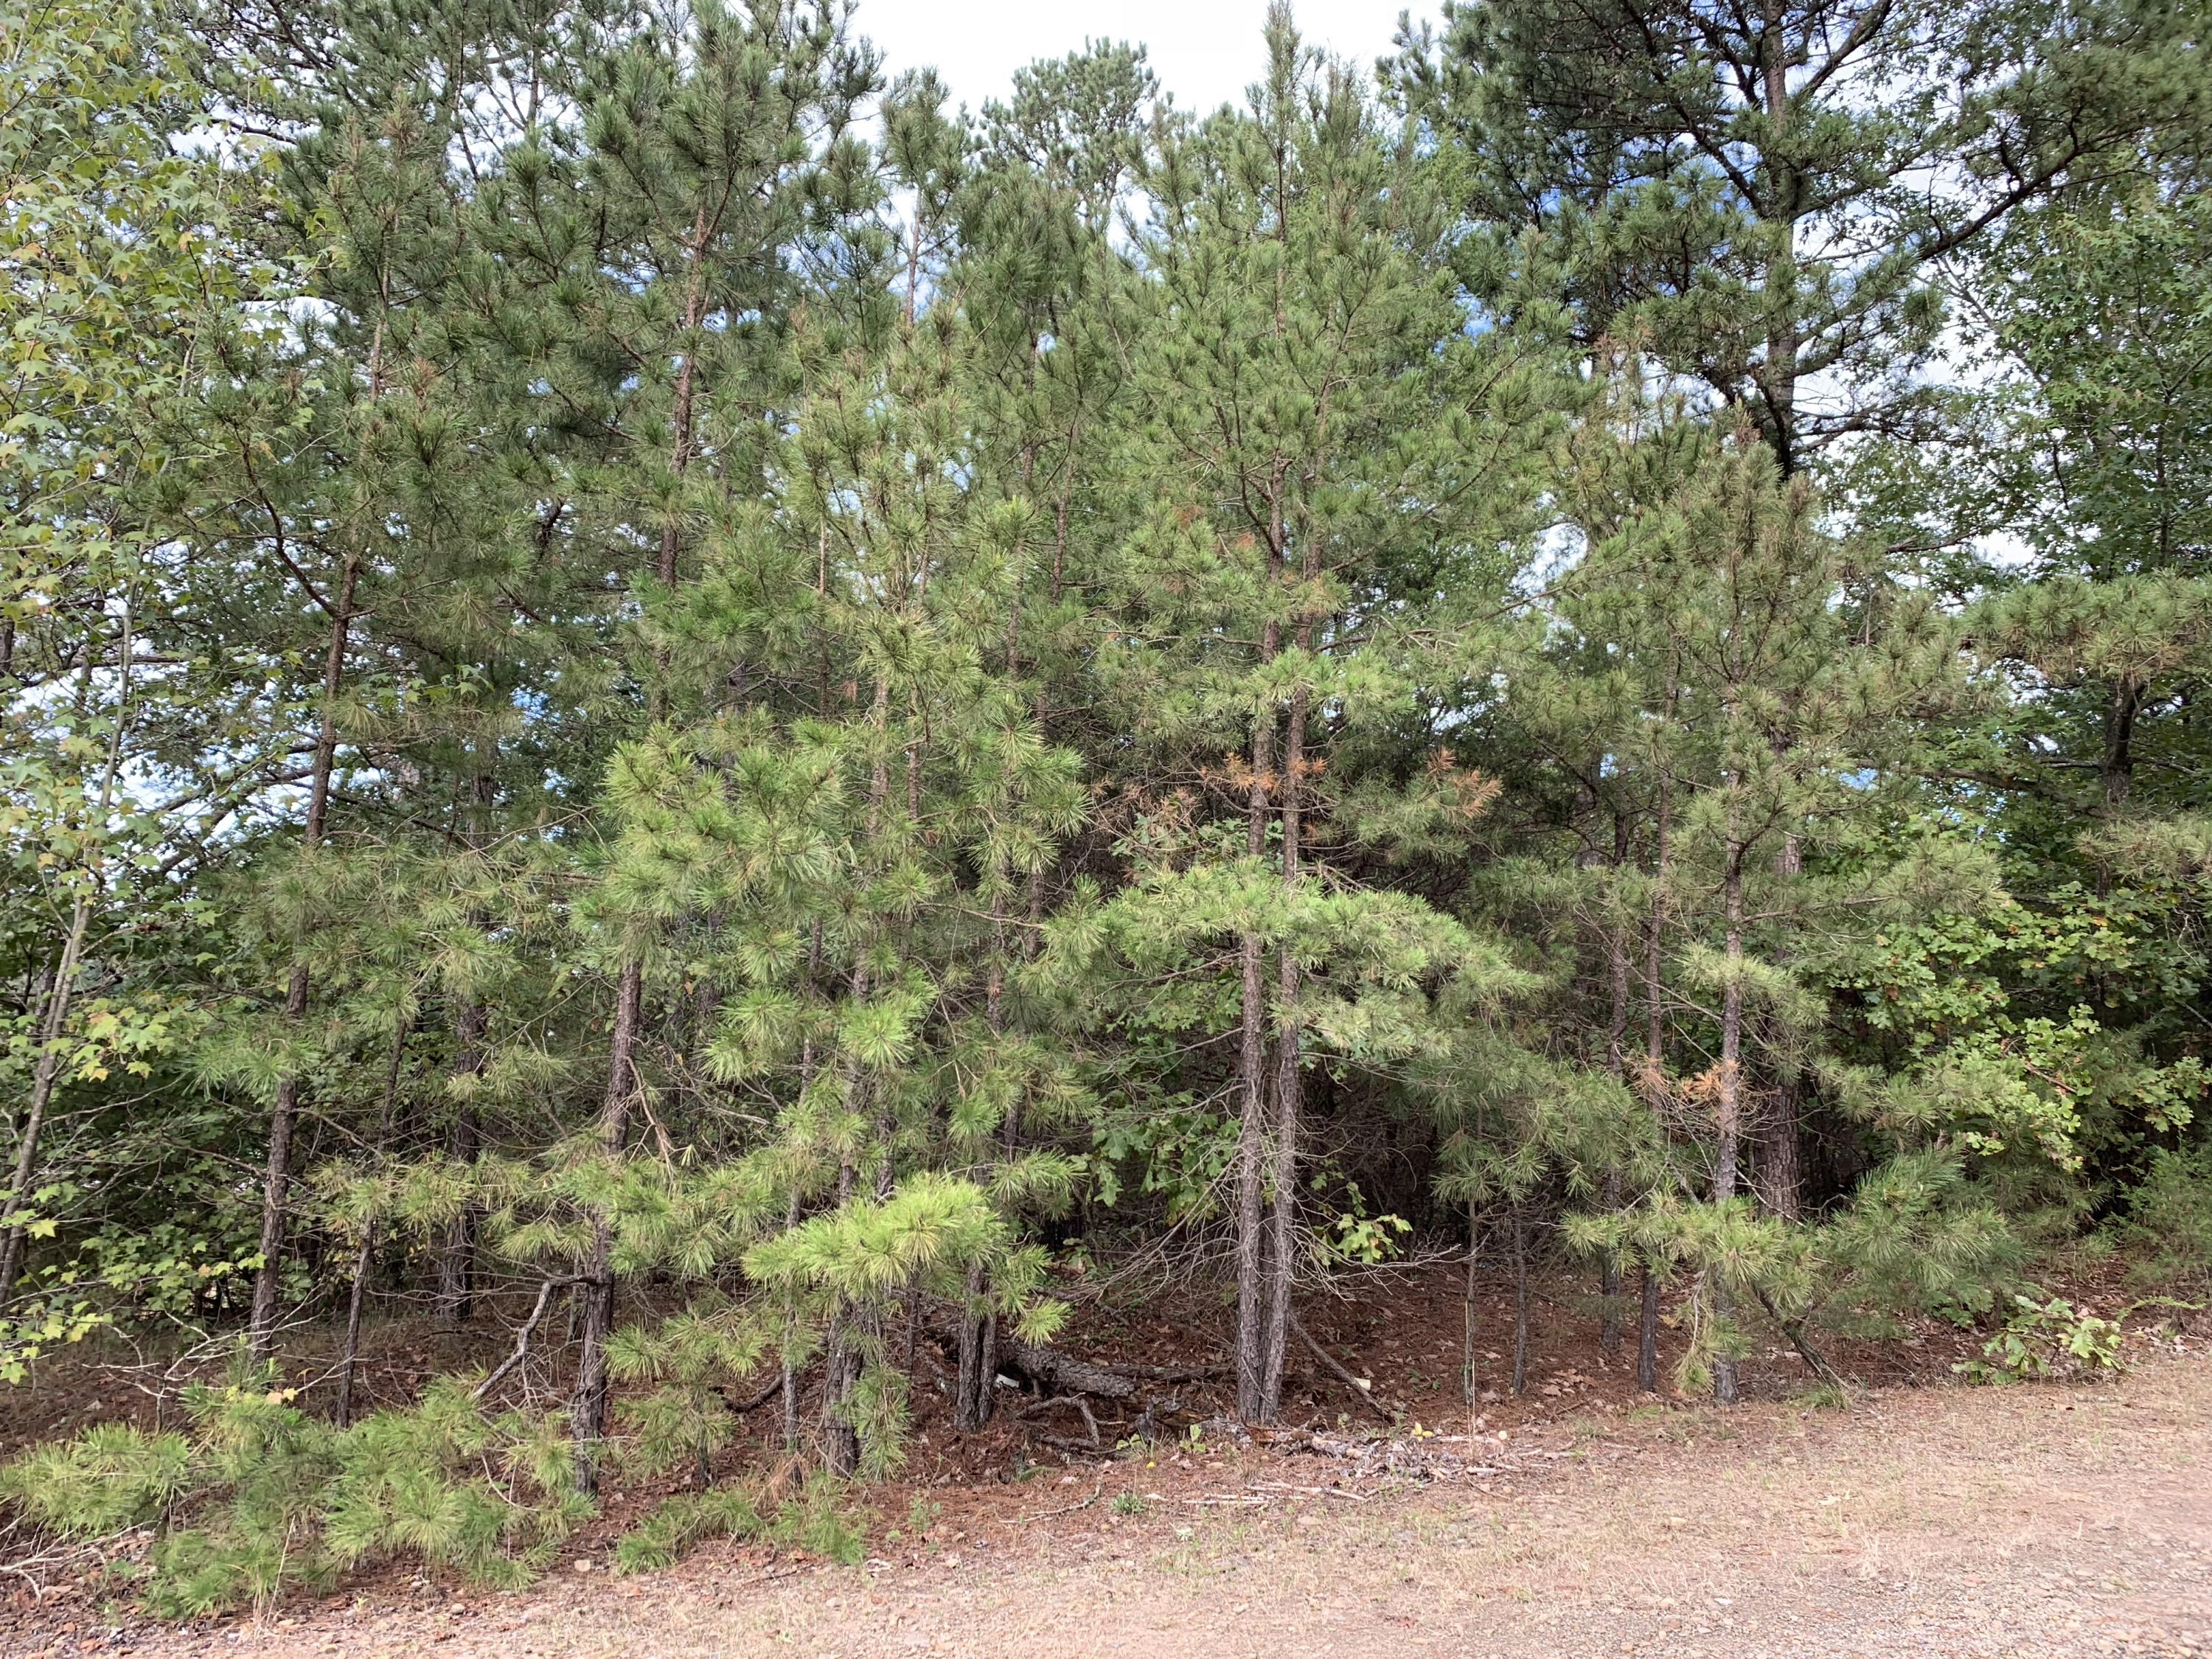 Large photo 4 of land for sale at  Bennett Orchard Estates Lots , London, AR, listed by Coldwell Banker Premier Realty